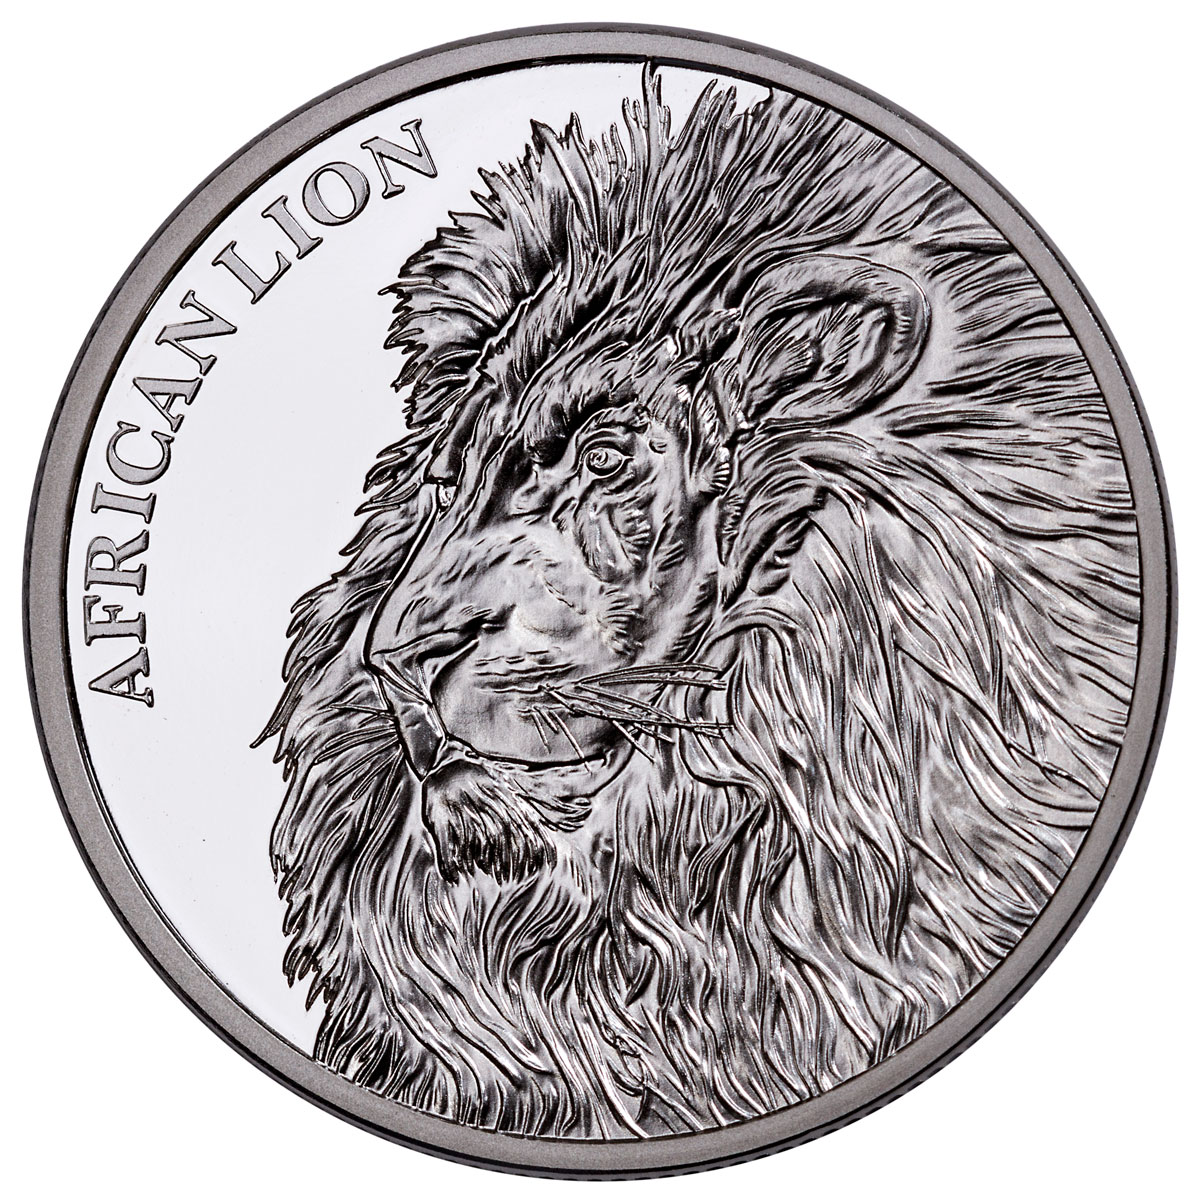 2018 Republic of Chad African Lion 1 oz Silver Proof Fr5,000 Coin GEM Proof Display Box